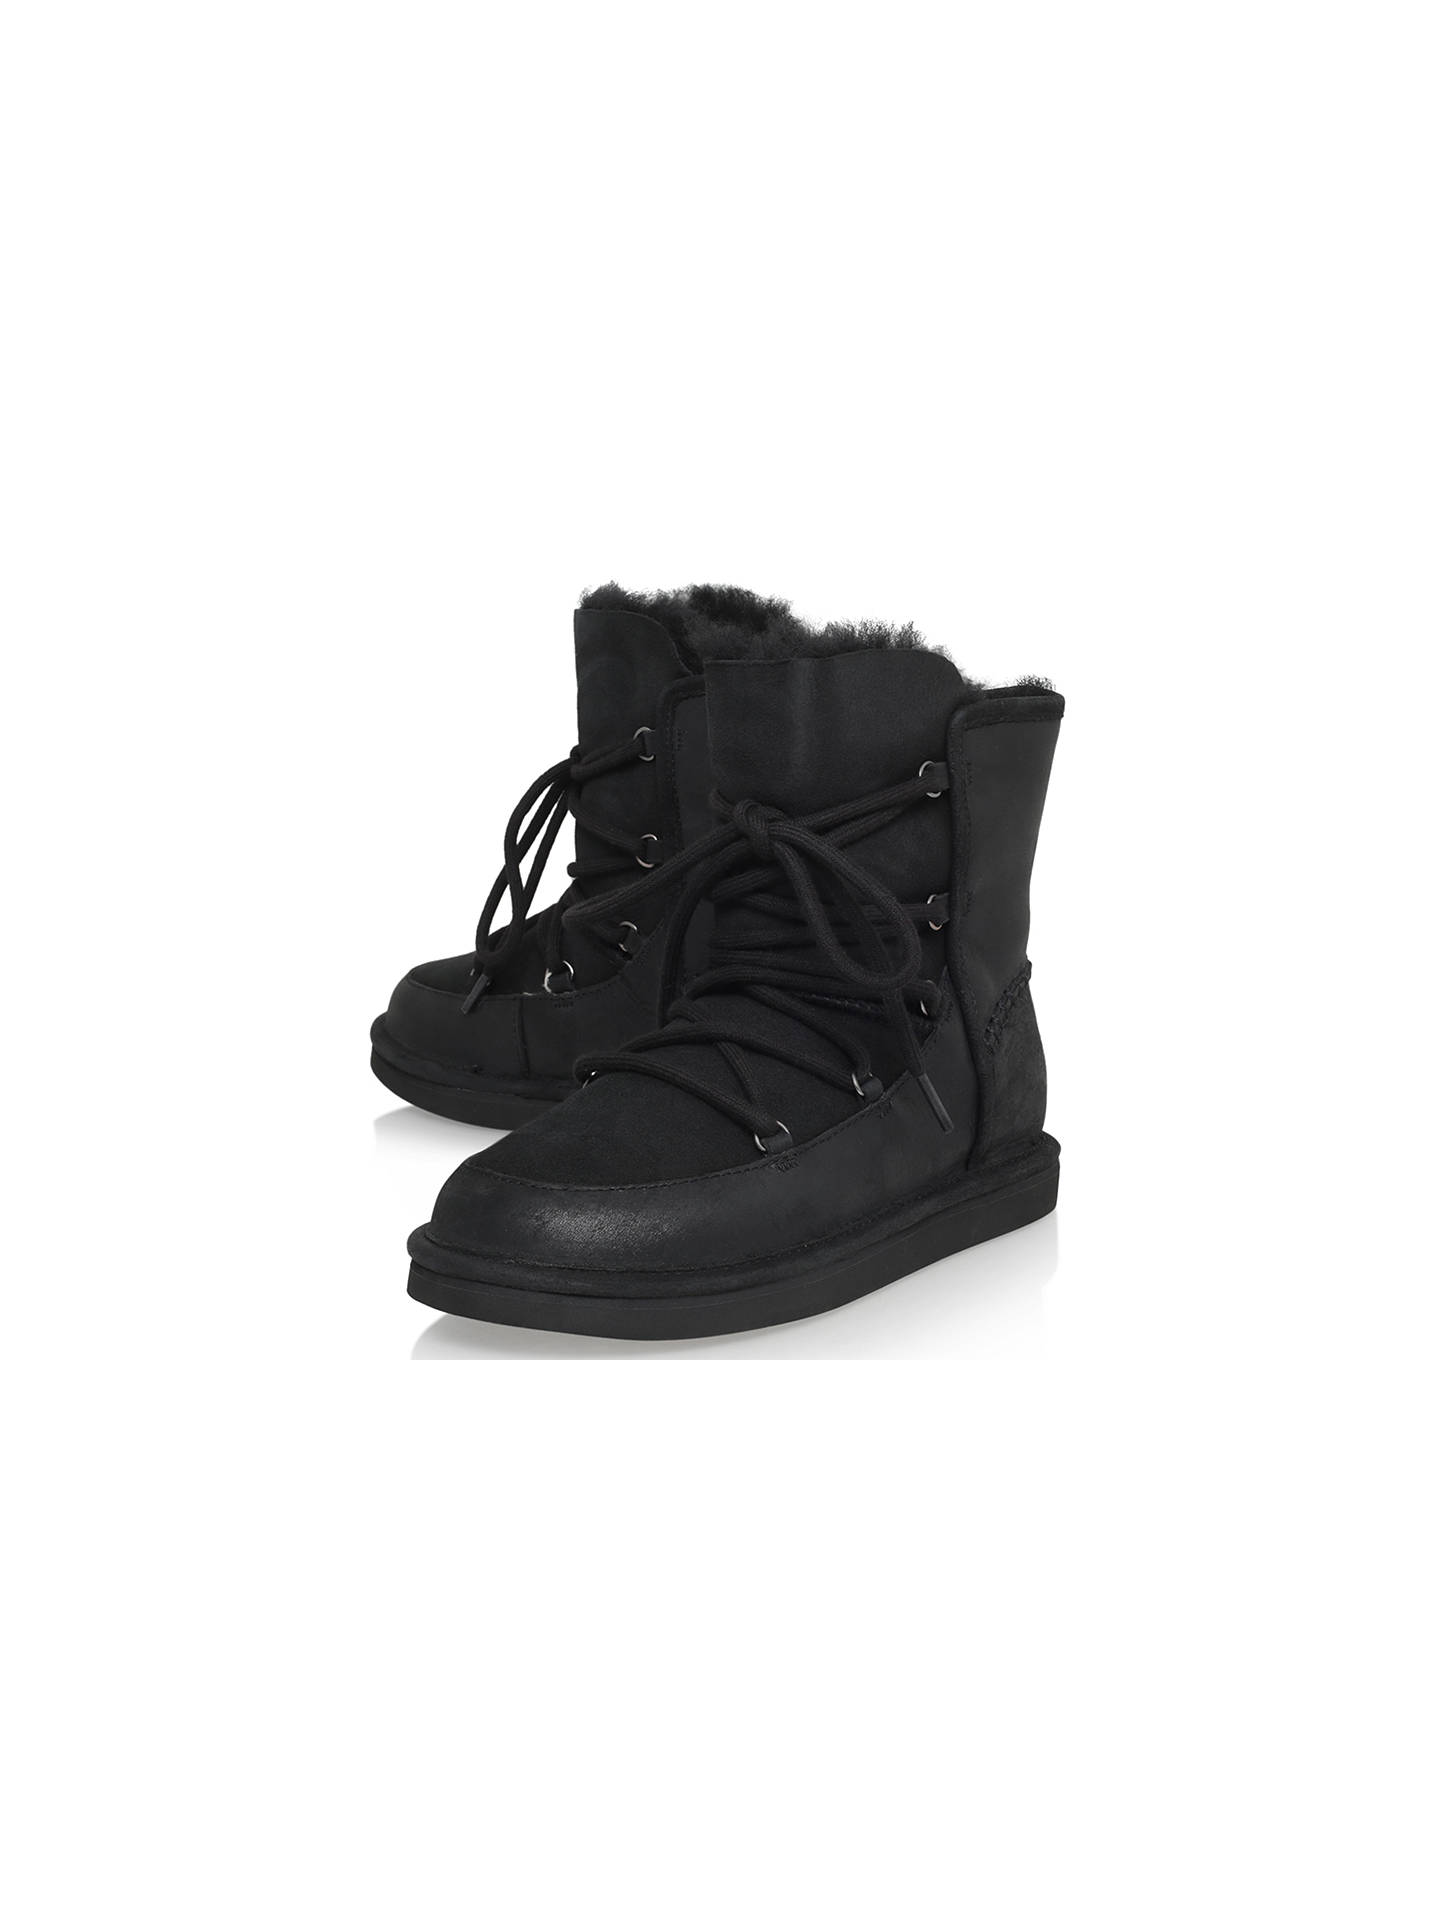 1771795b7d7 UGG Lodge Lace Up Ankle Boot, Black Leather at John Lewis & Partners